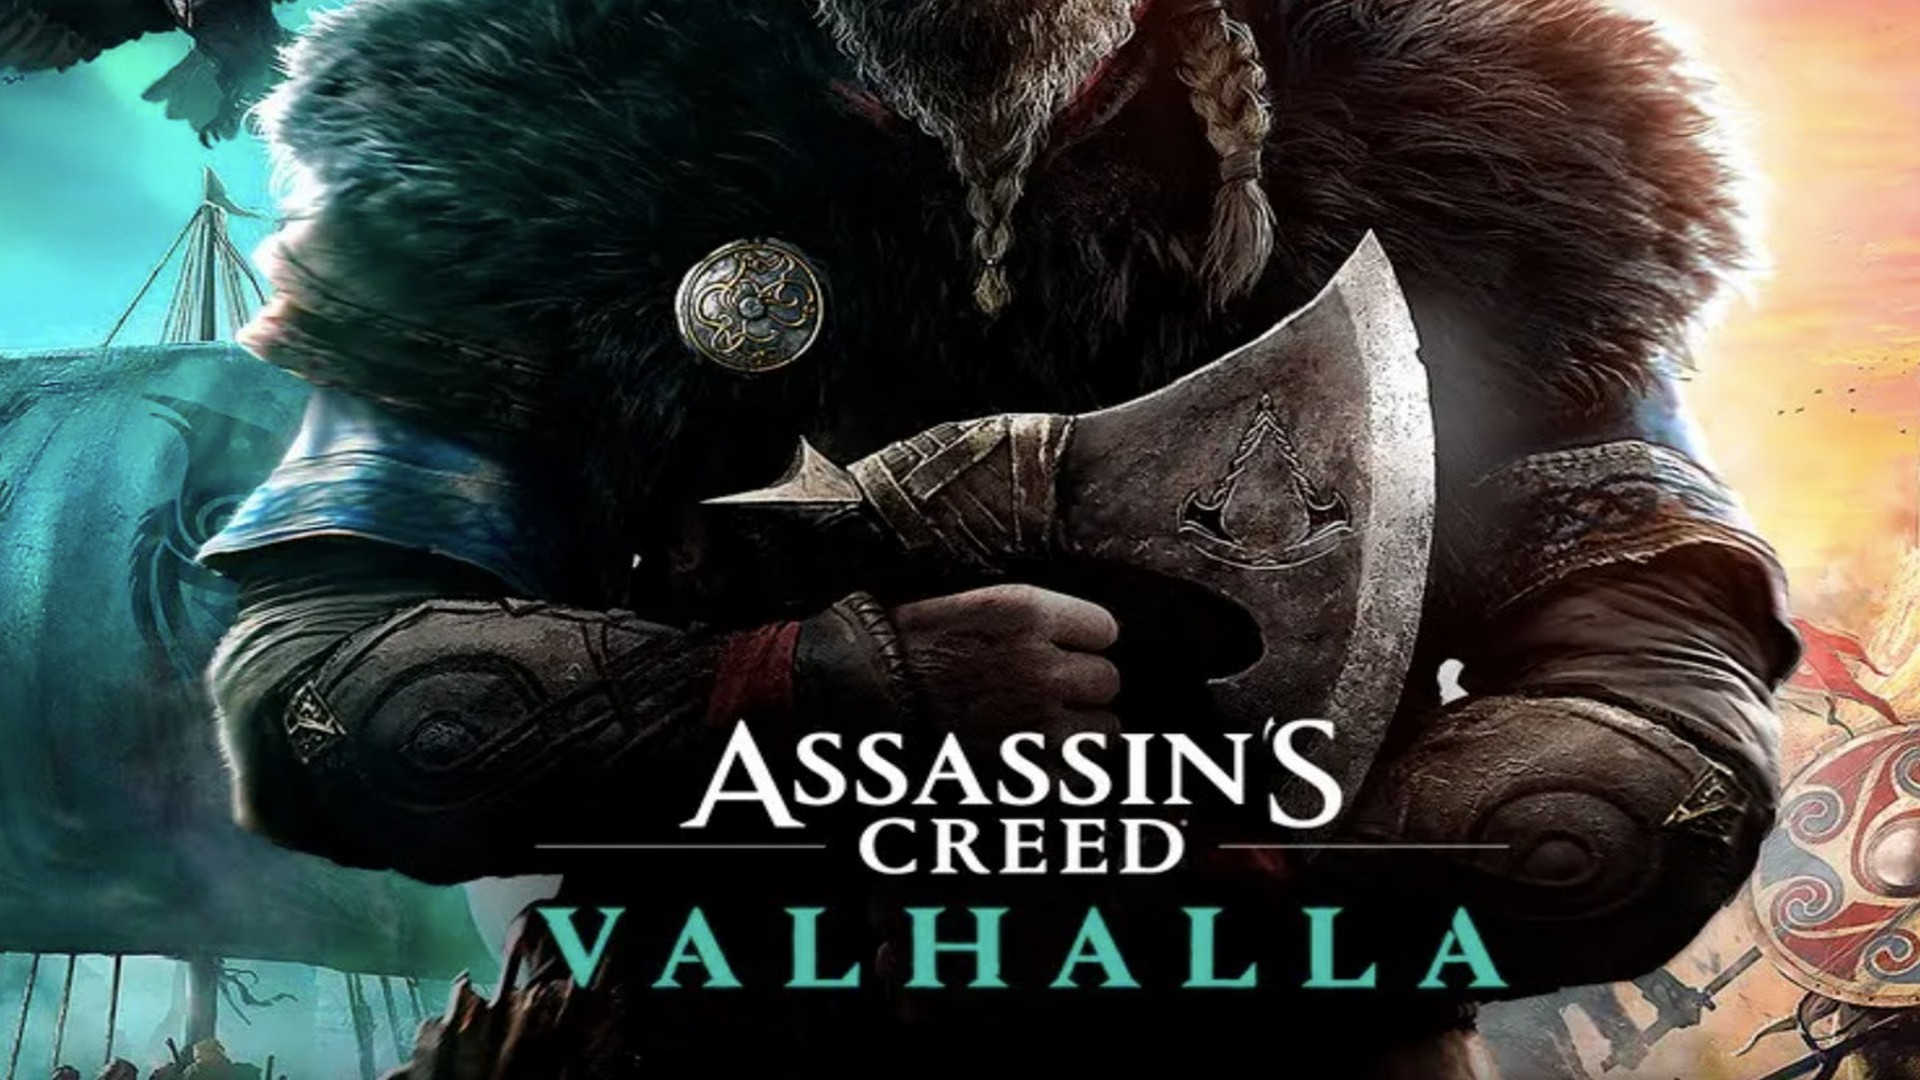 Ubisoft Announced Assassin S Creed Valhalla To Be Fully Revealed On May 1 Mkau Gaming